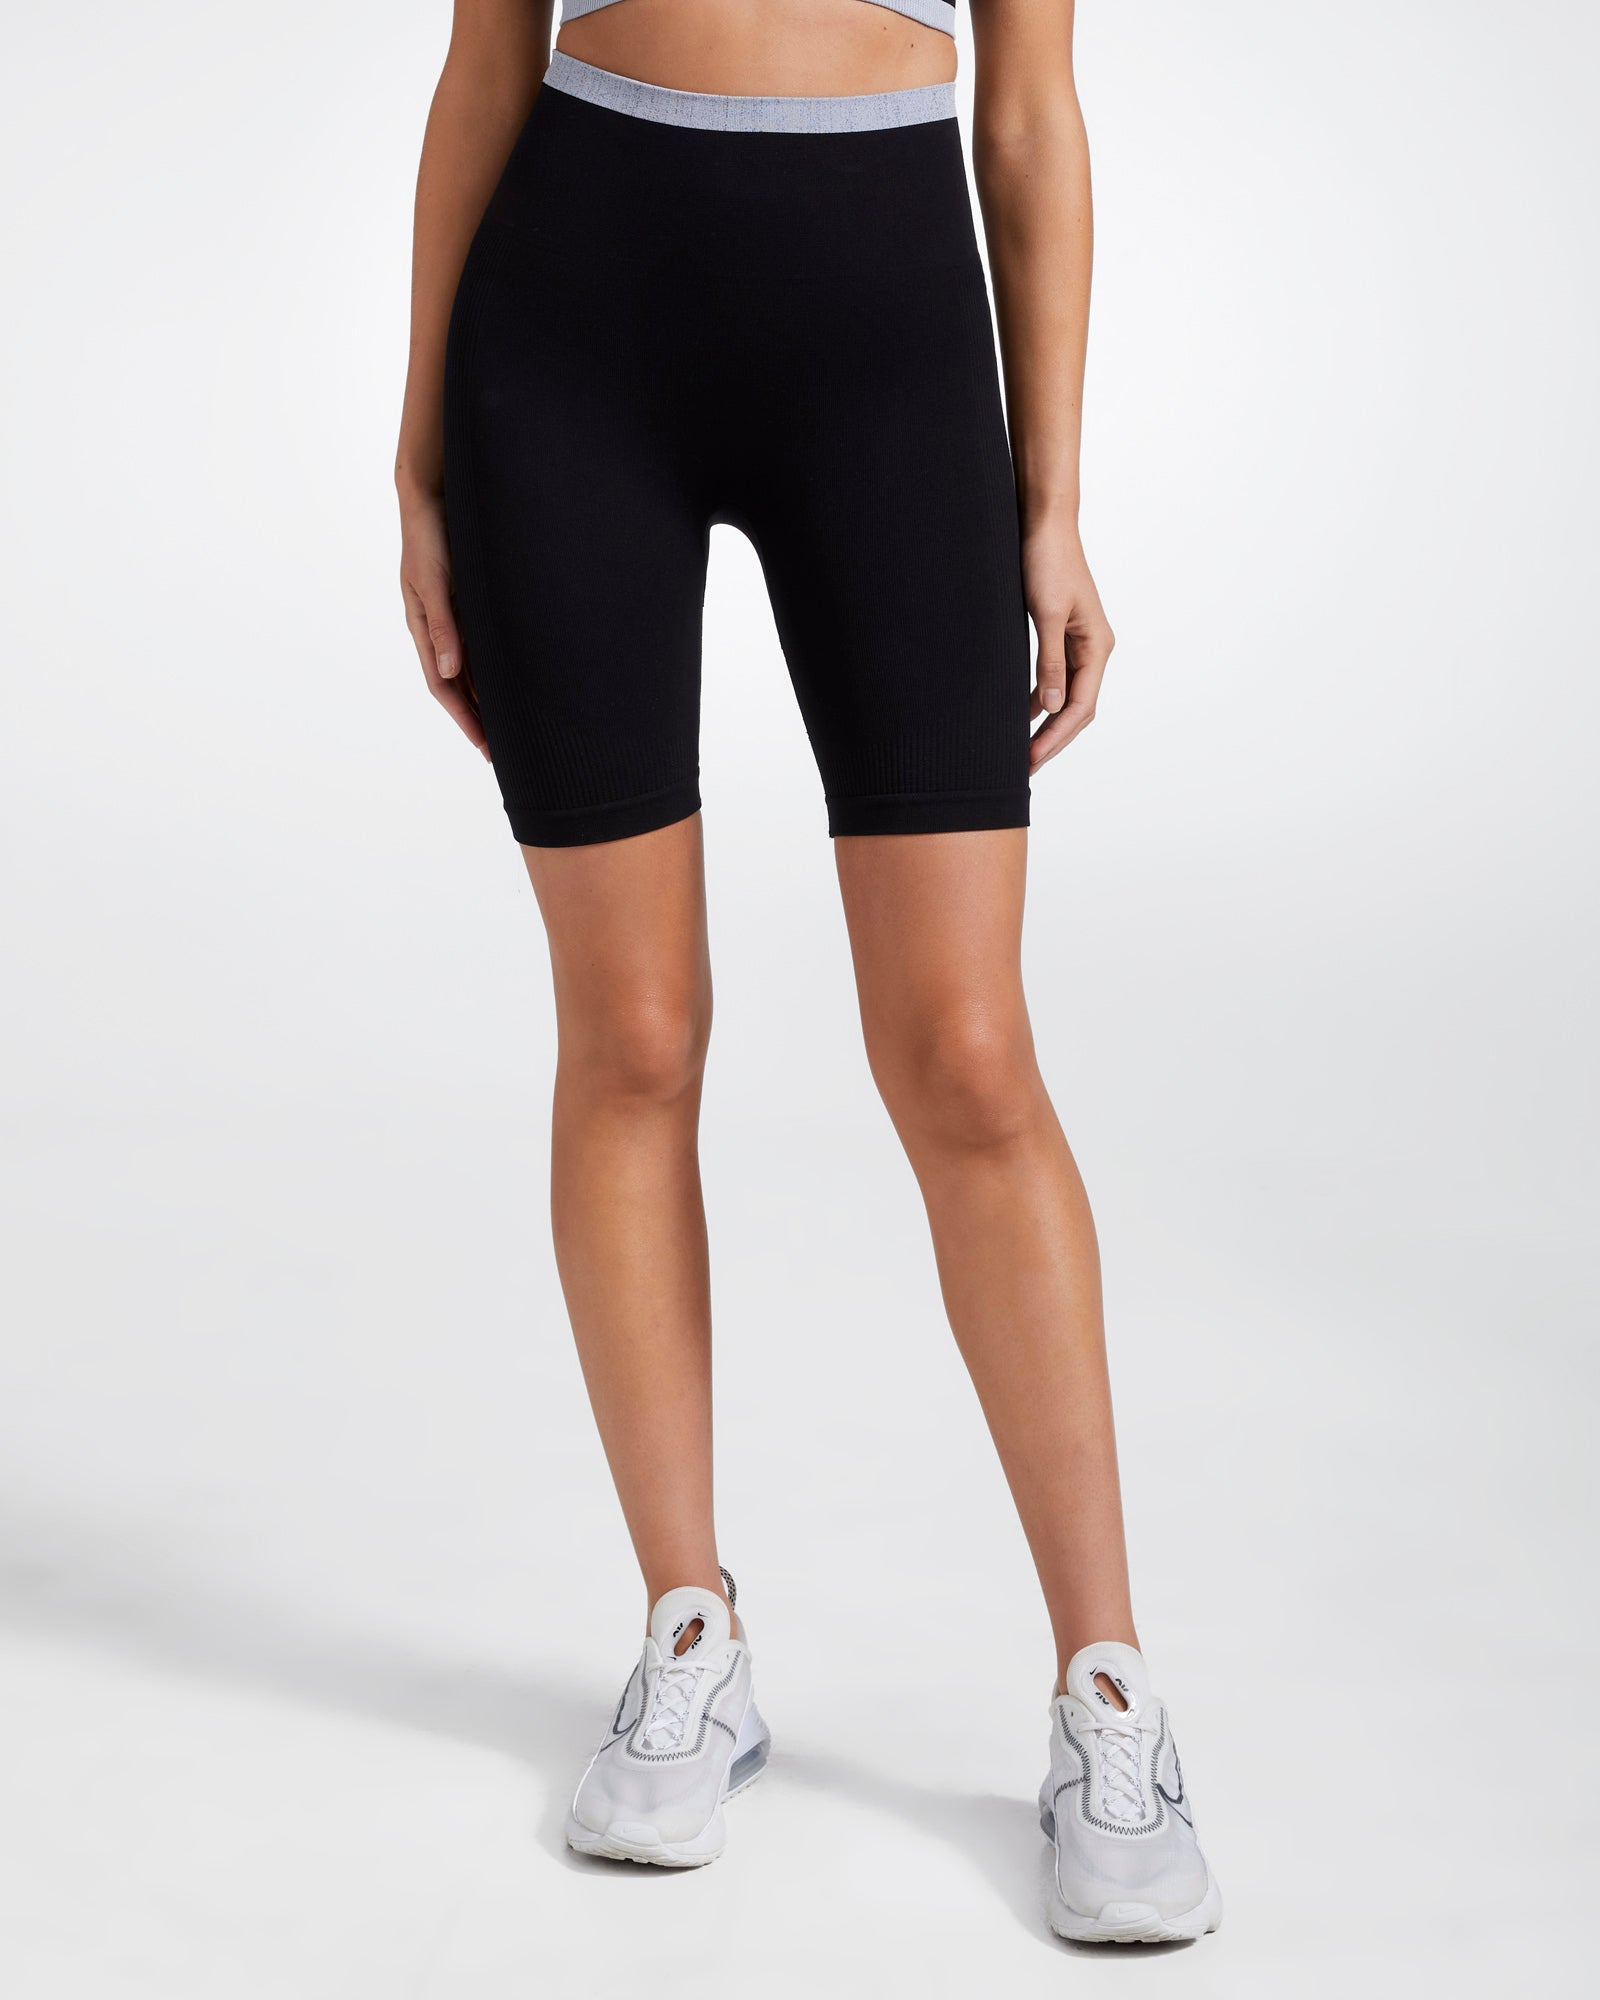 PORTLAND SPIN SEAMLESS SHORTS BLACK